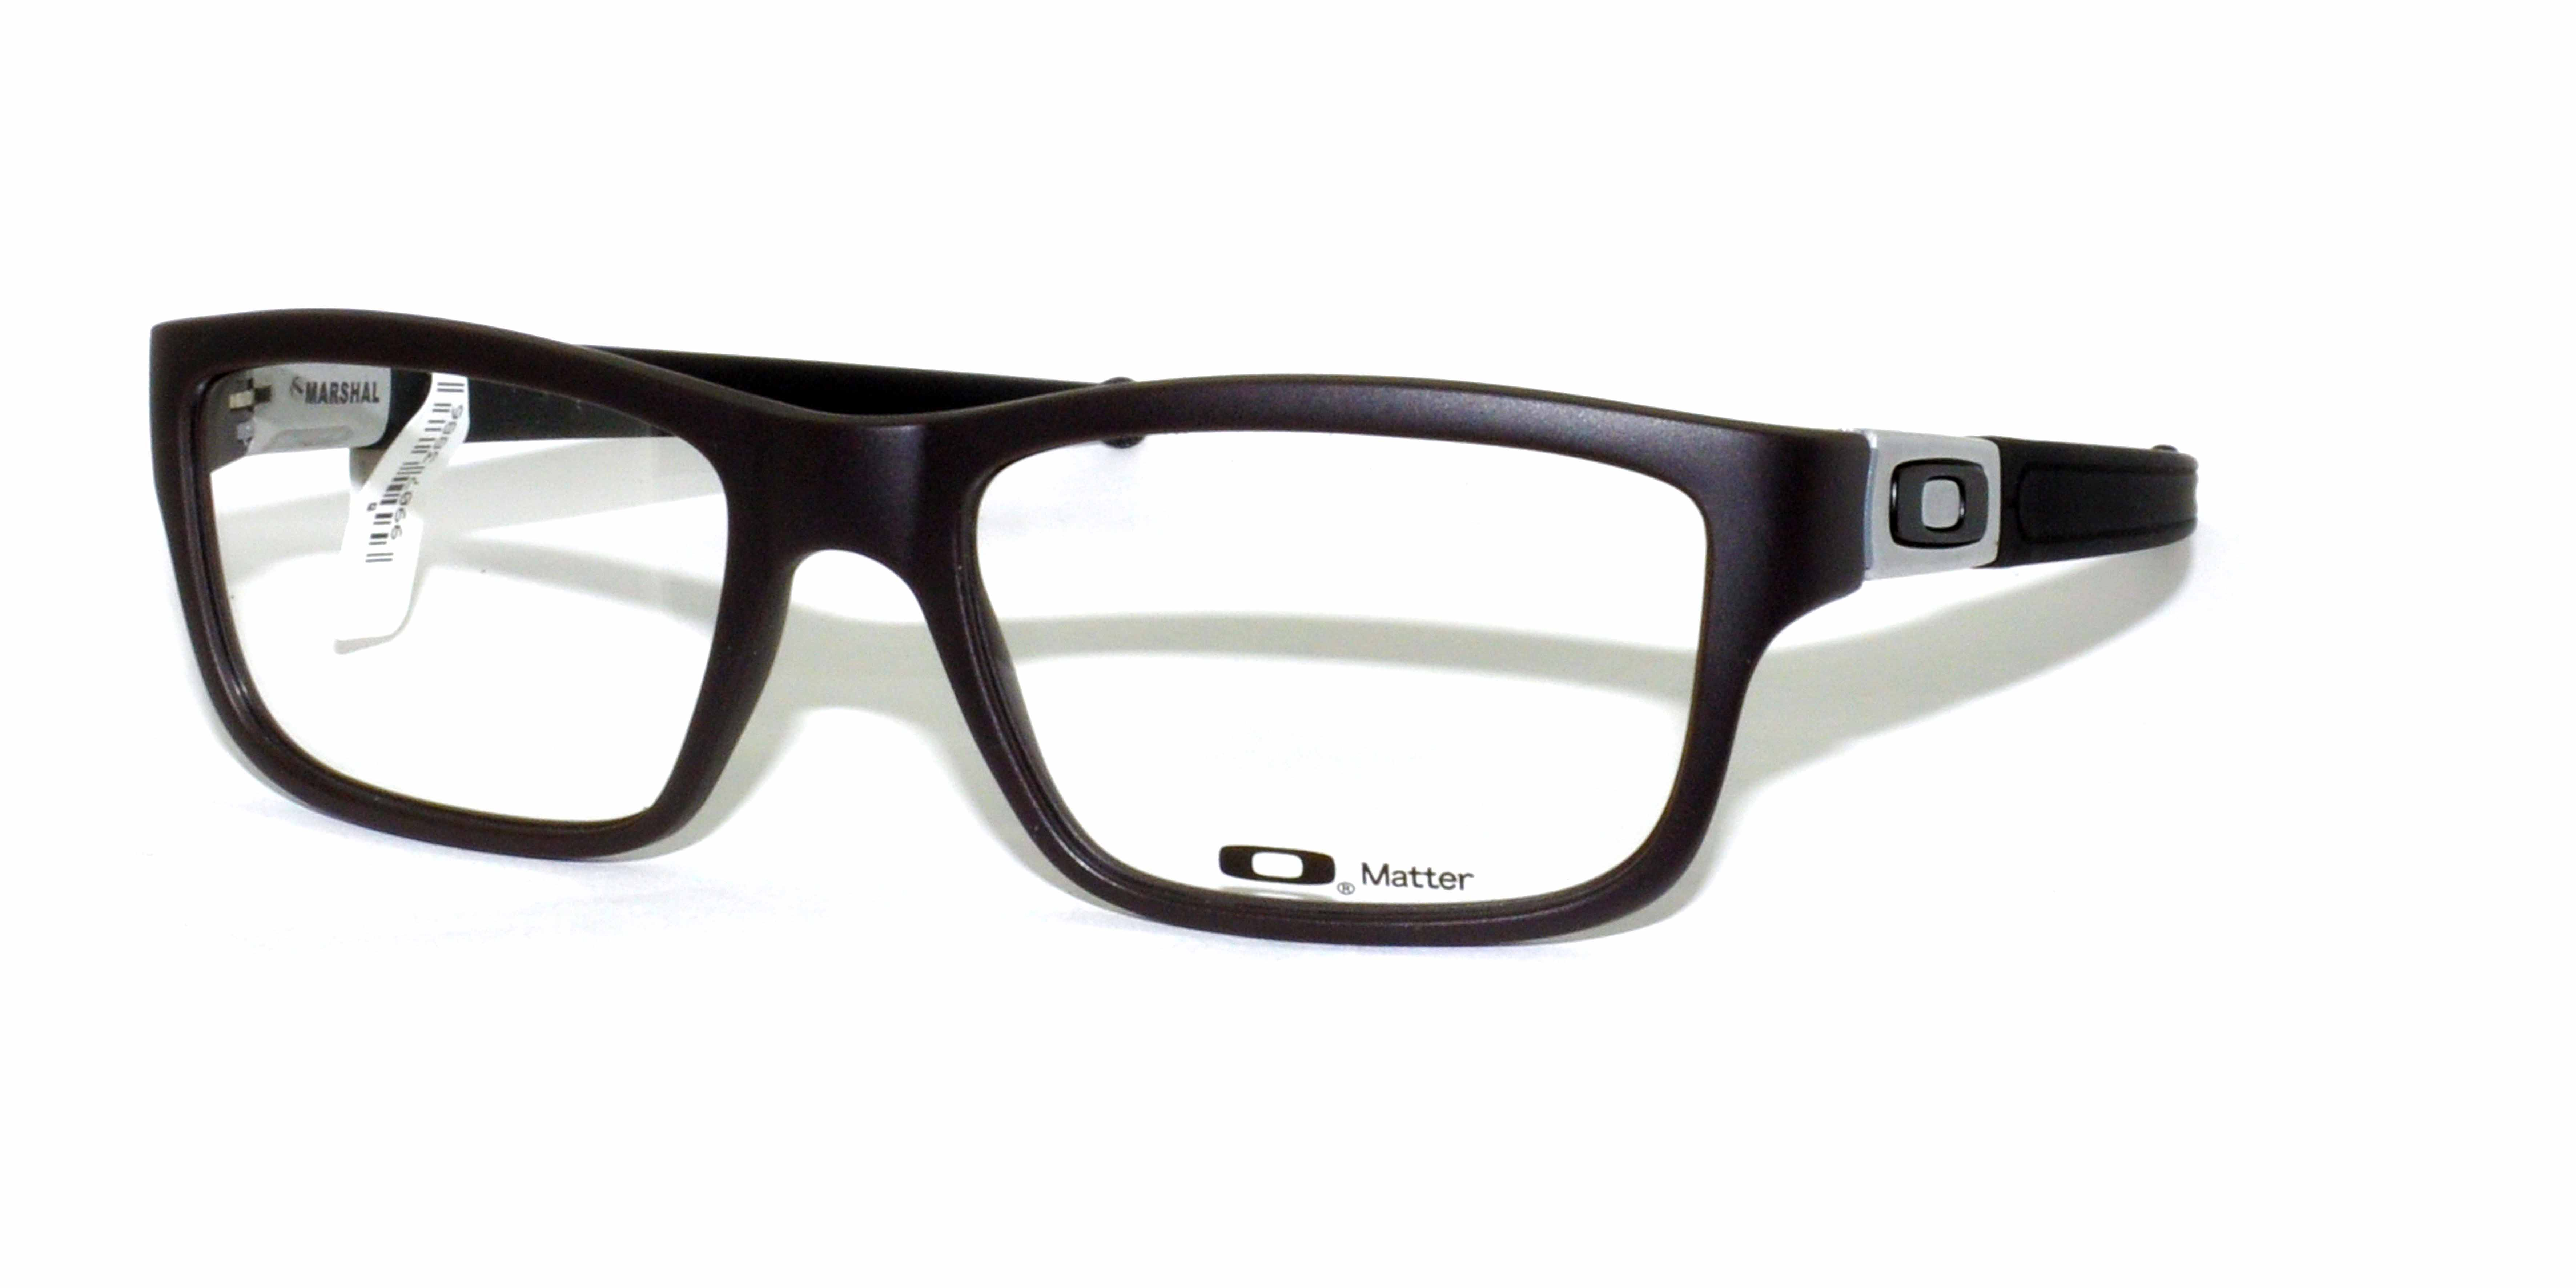 Oakley Glasses Frame Size : Oakley Glasses Frame Size